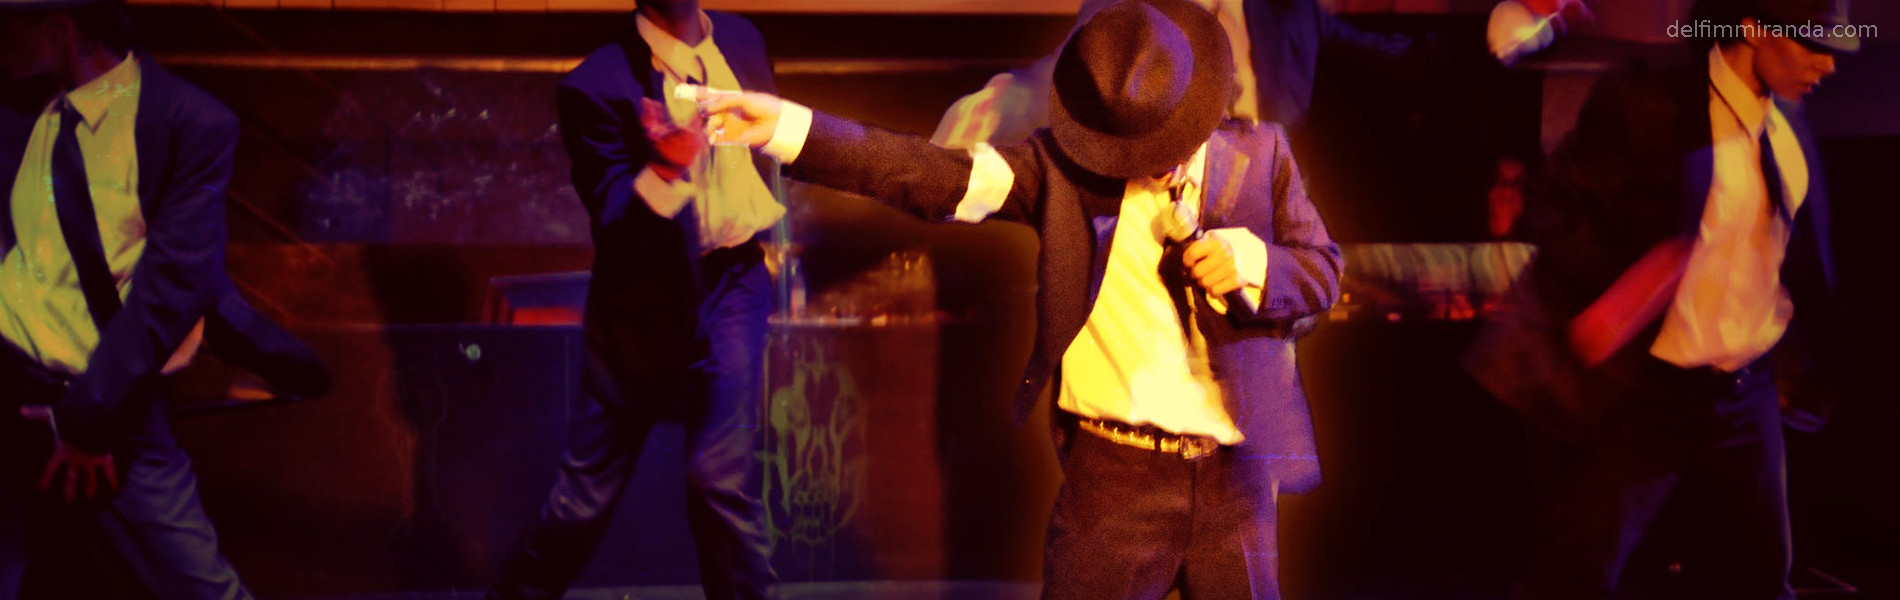 Delfim Miranda - Award Winning Michael Jackson Tribute Artist - Look Alike - Sound Alike - Impersonator Singing and Dancing Like the King of Pop